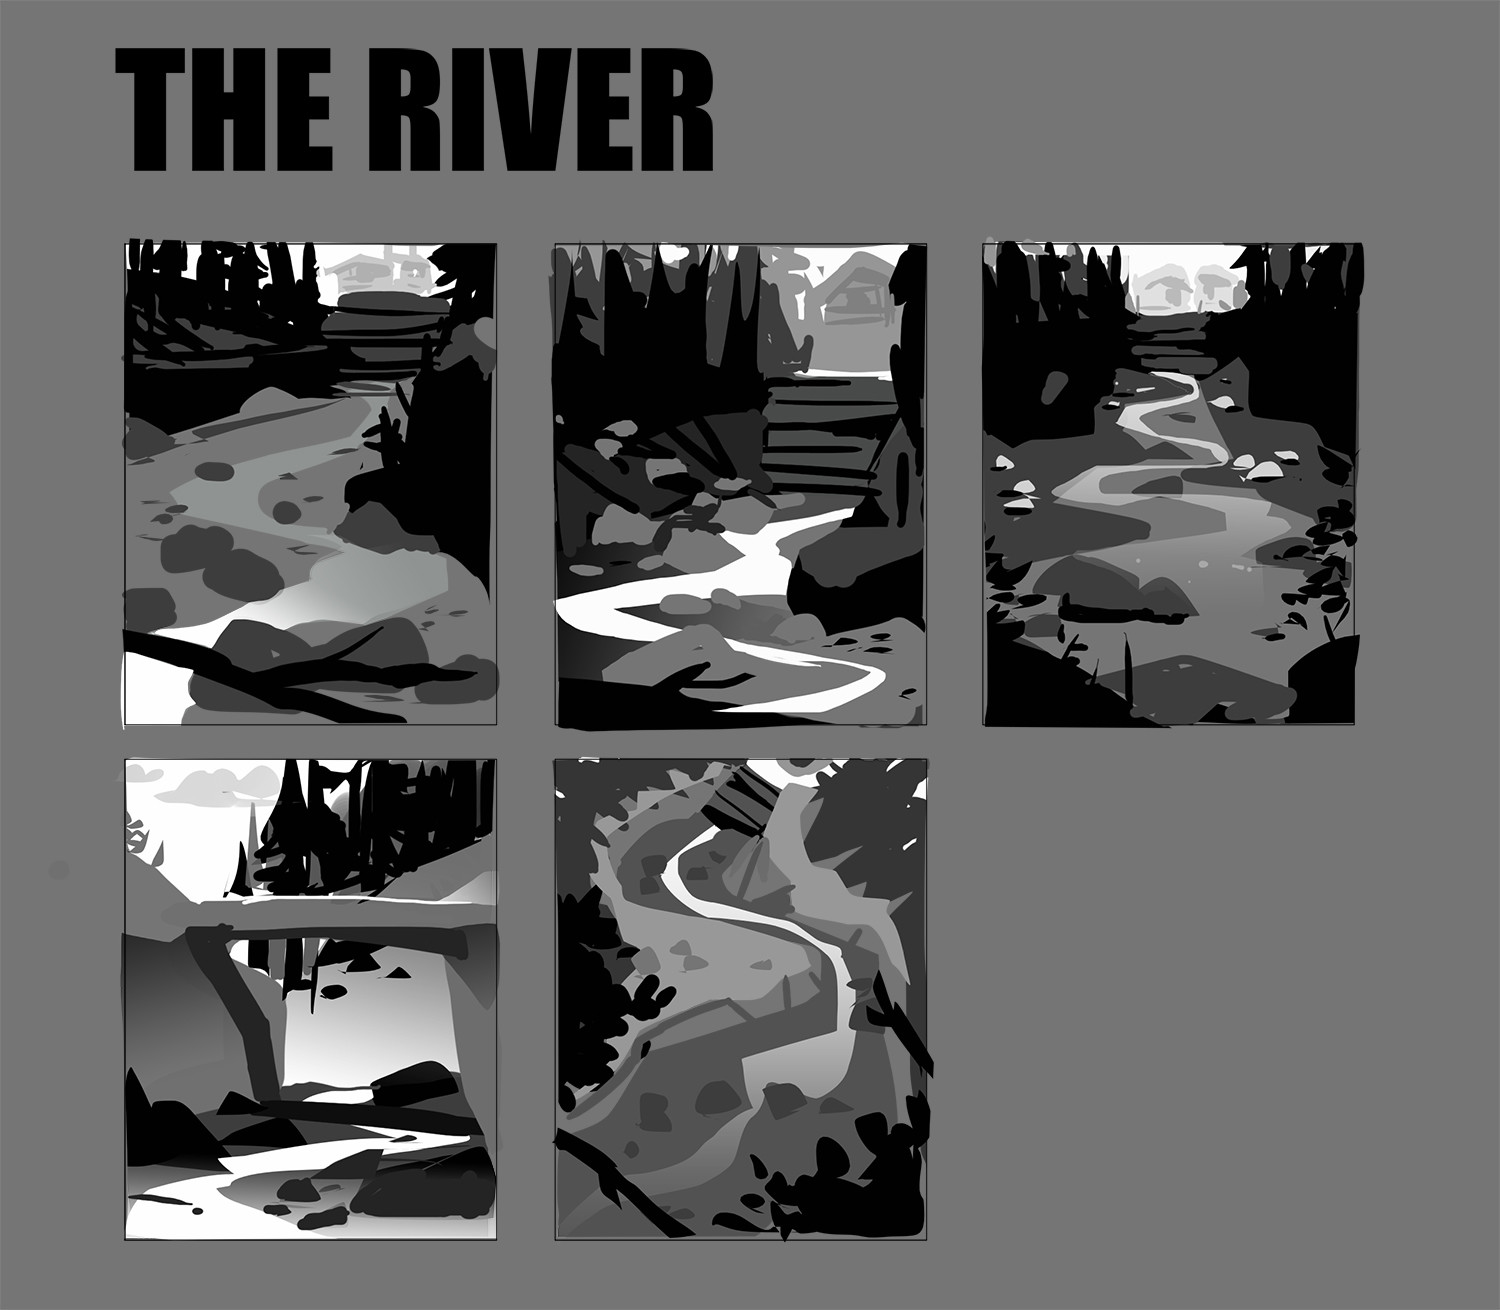 Jason rumpff river sketches